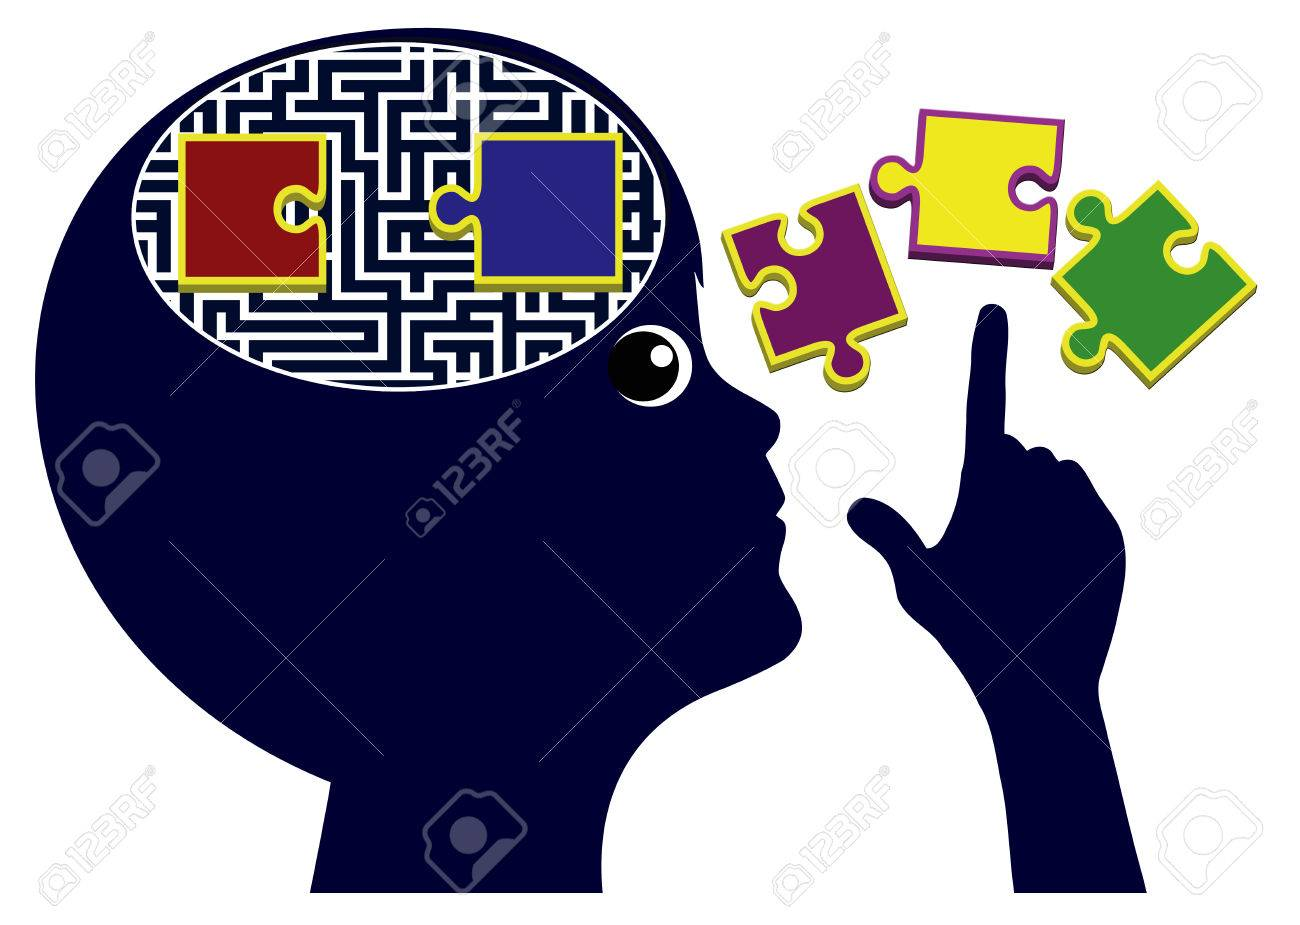 Teaching Kids Thinking Skills  Self-centered learning and brain